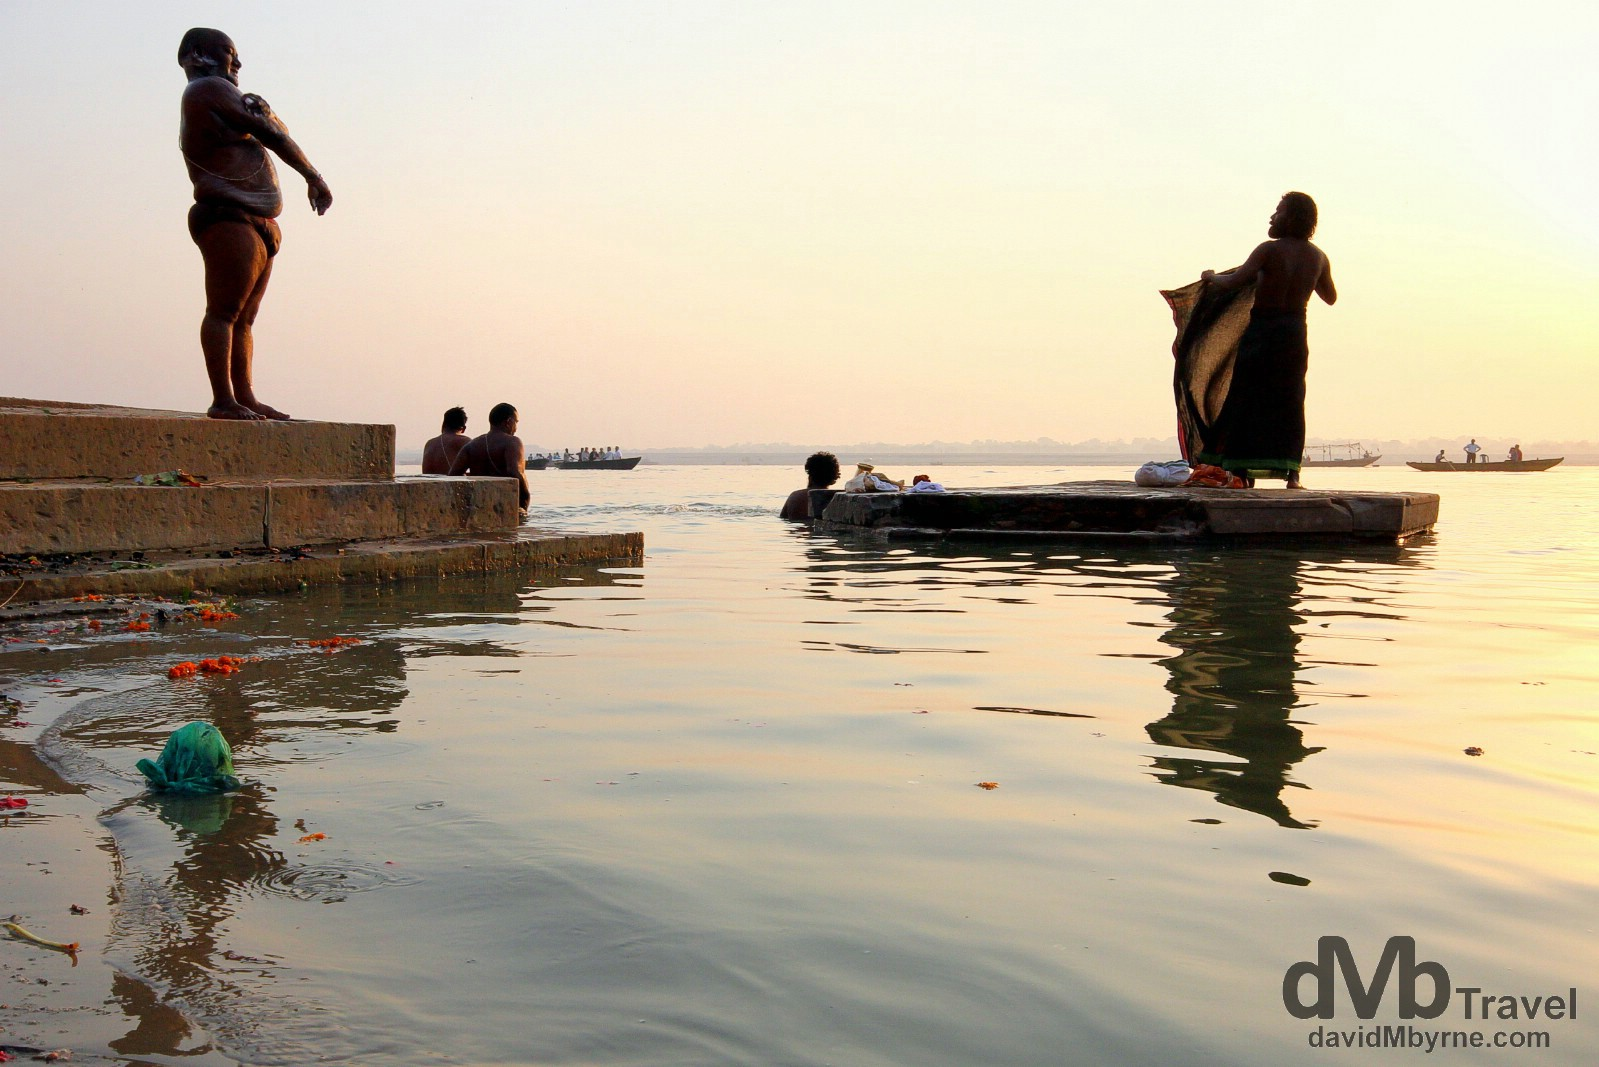 Bathing in the Ganges River at sunrise in Varanasi, Uttar Pradesh, India. October 14th 2012.